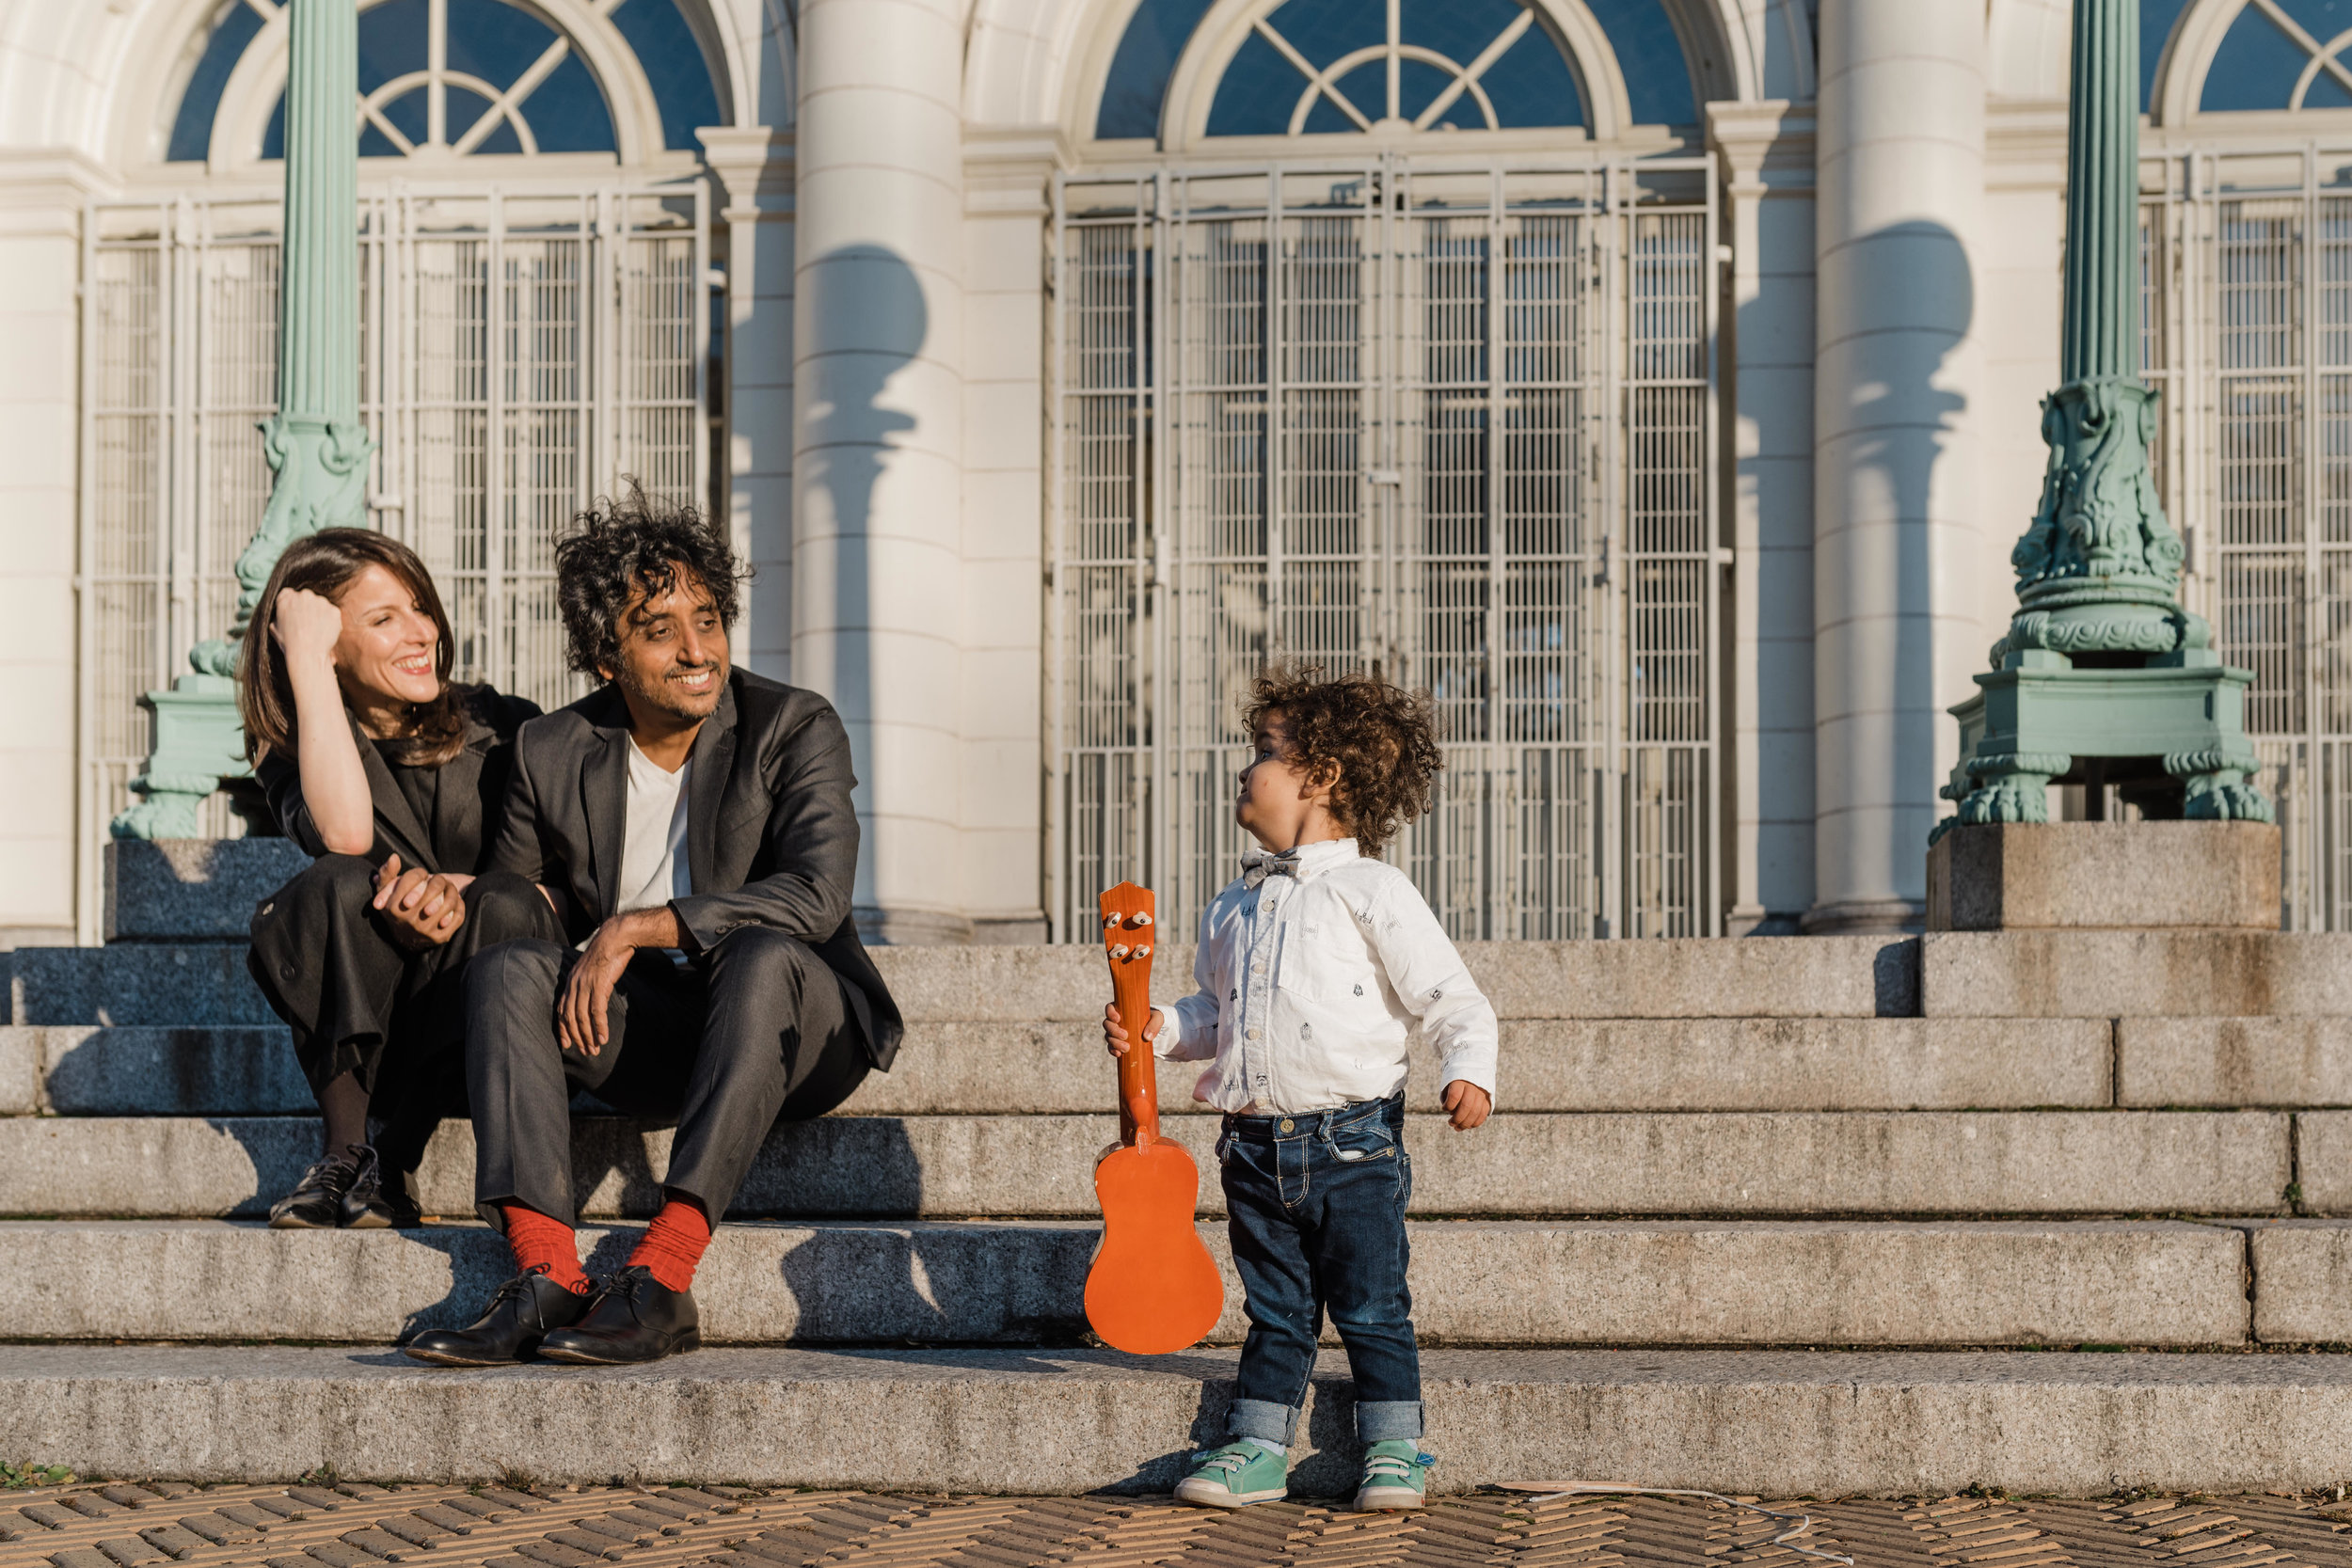 Family lifestyle session at Prospect Park in Brooklyn, New York